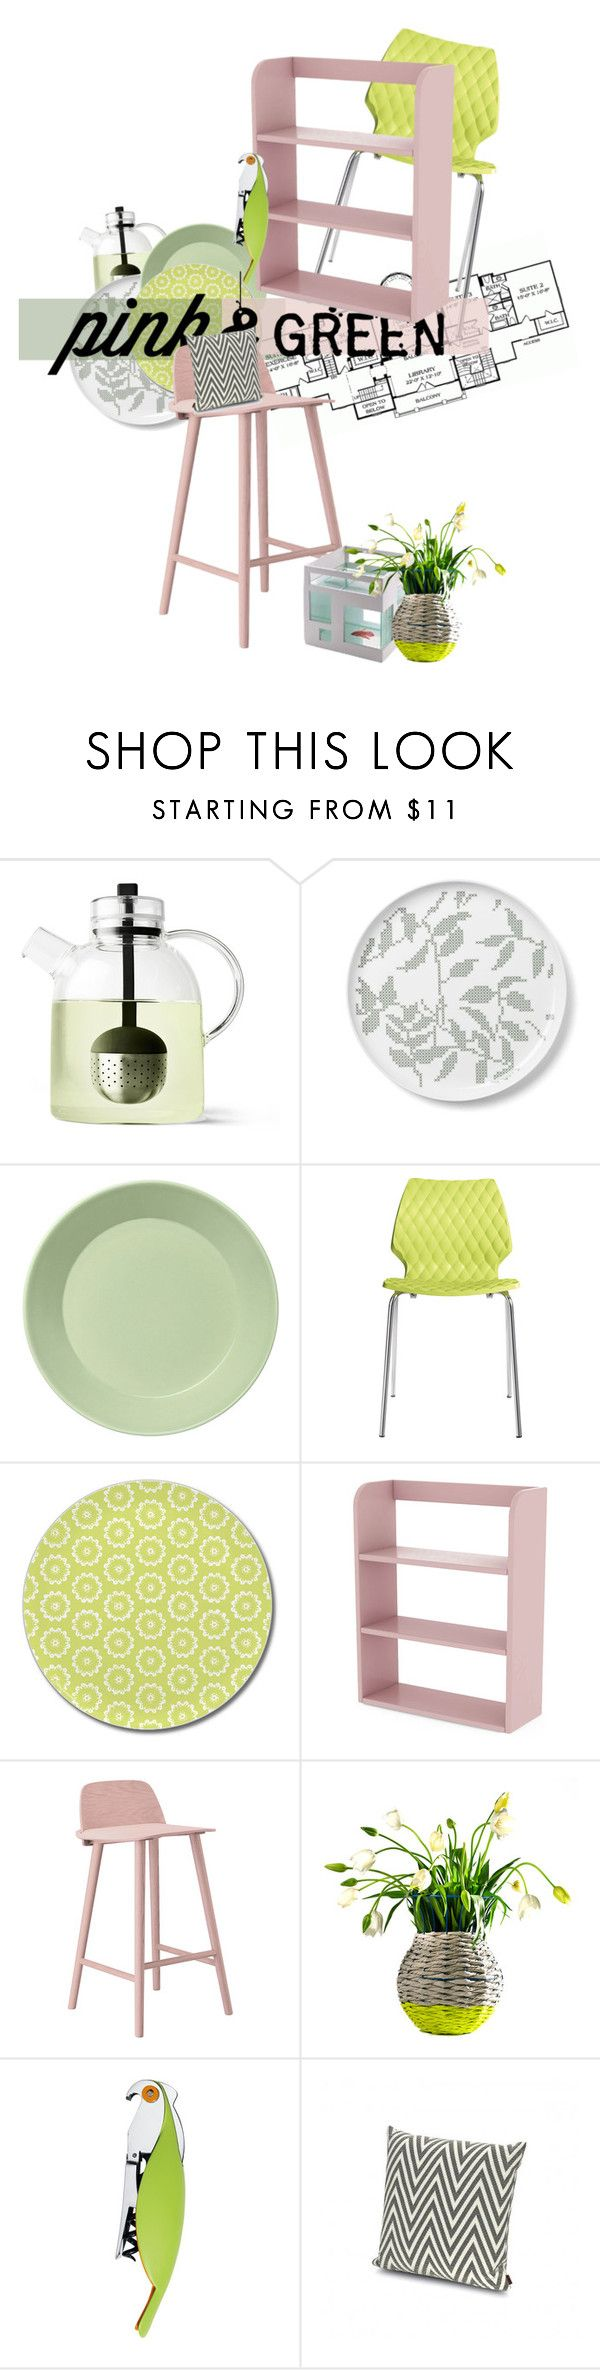 """LOVETHESIGN contest"" by dear-inge ❤ liked on Polyvore featuring interior, interiors, interior design, home, home decor, interior decorating, Menu, iittala, Home Source International and Metalmobil"